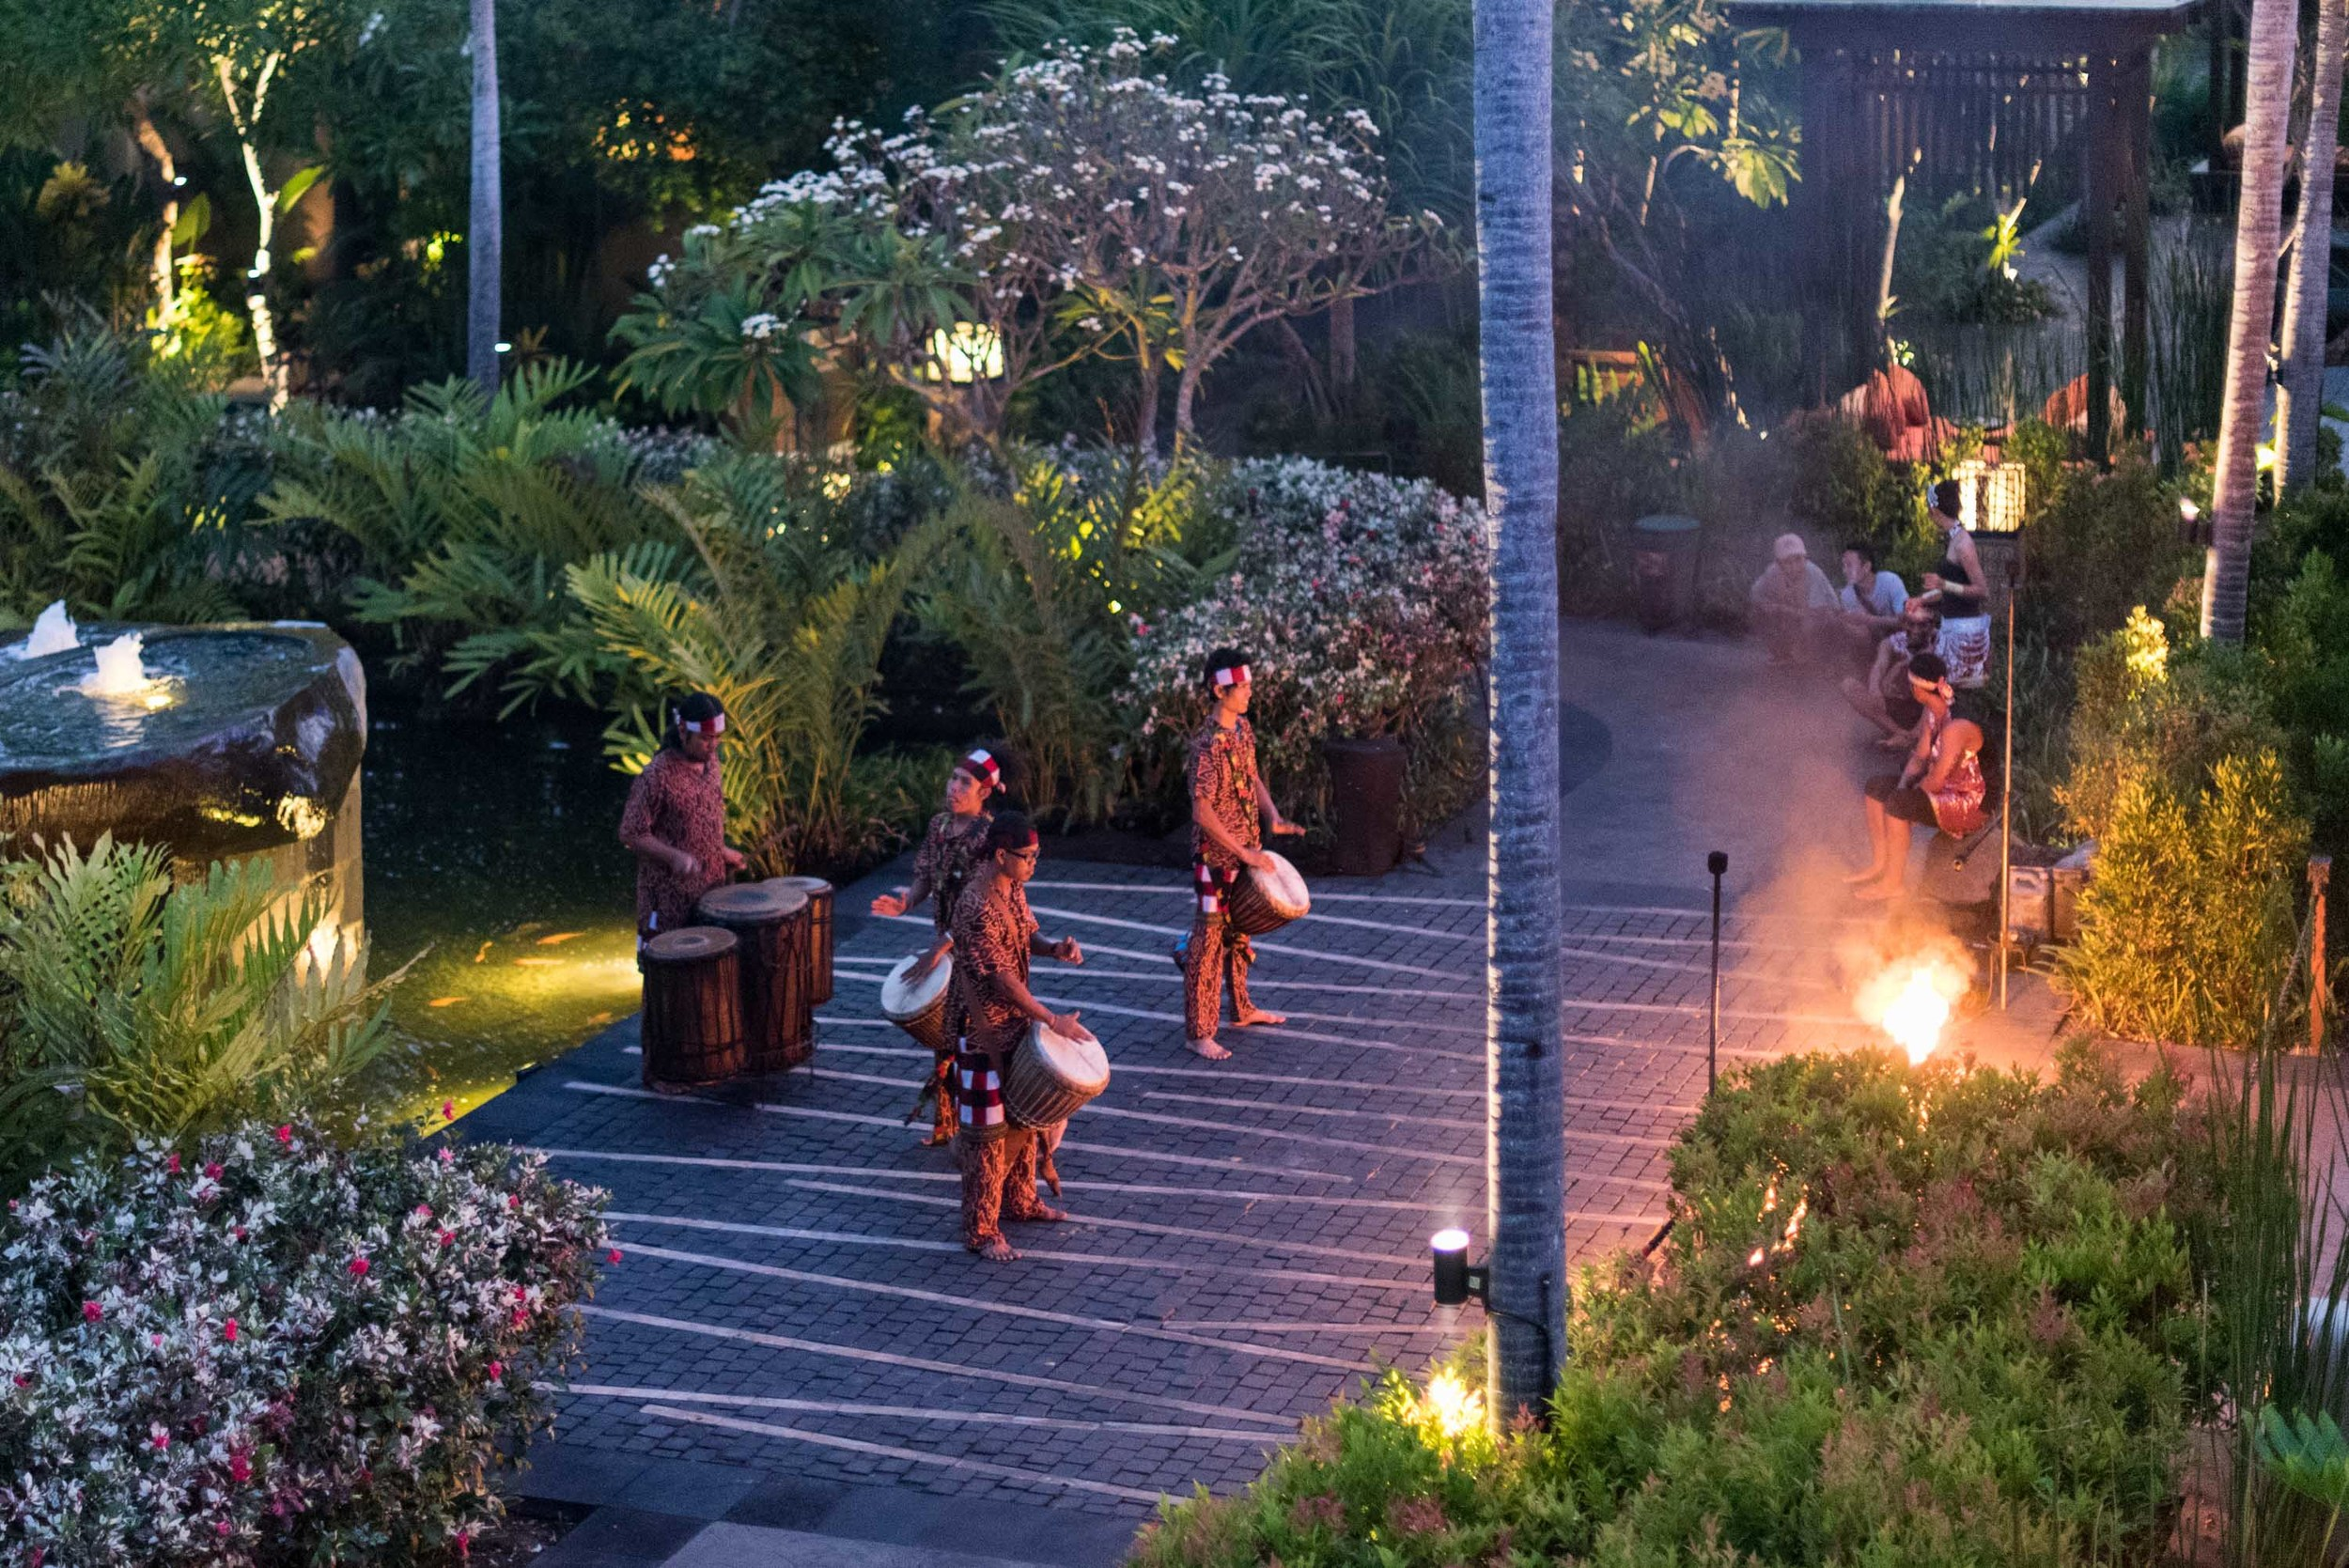 Daily Evening Fire Ritual  The St. Regis Bali Resort